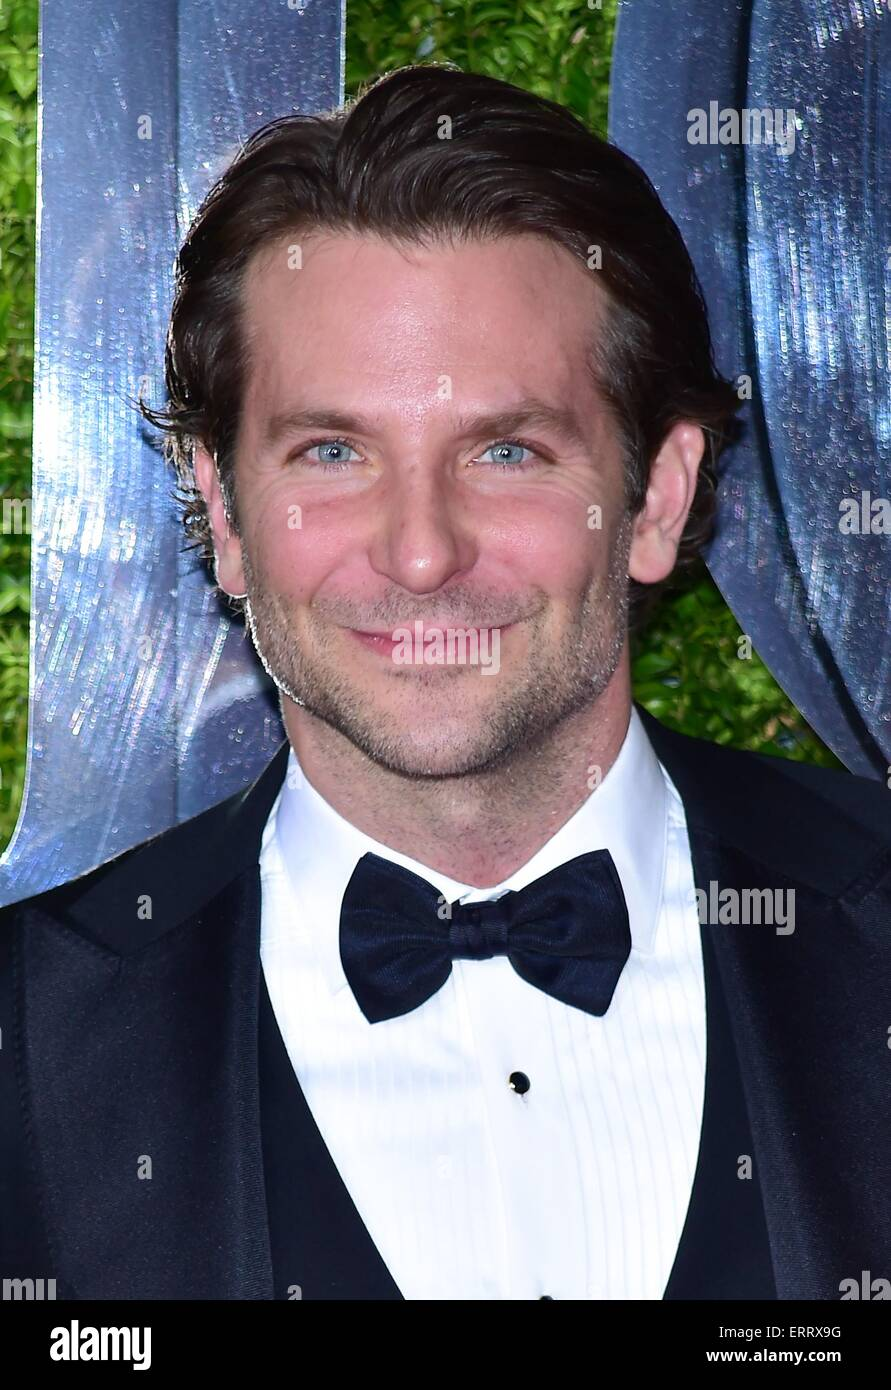 New York, NY, USA. 7th June, 2015. Bradley Cooper at arrivals for The 69th Annual Tony Awards 2015, Radio City Music Hall, New York, NY June 7, 2015. - new-york-ny-usa-7th-june-2015-bradley-cooper-at-arrivals-for-the-69th-ERRX9G